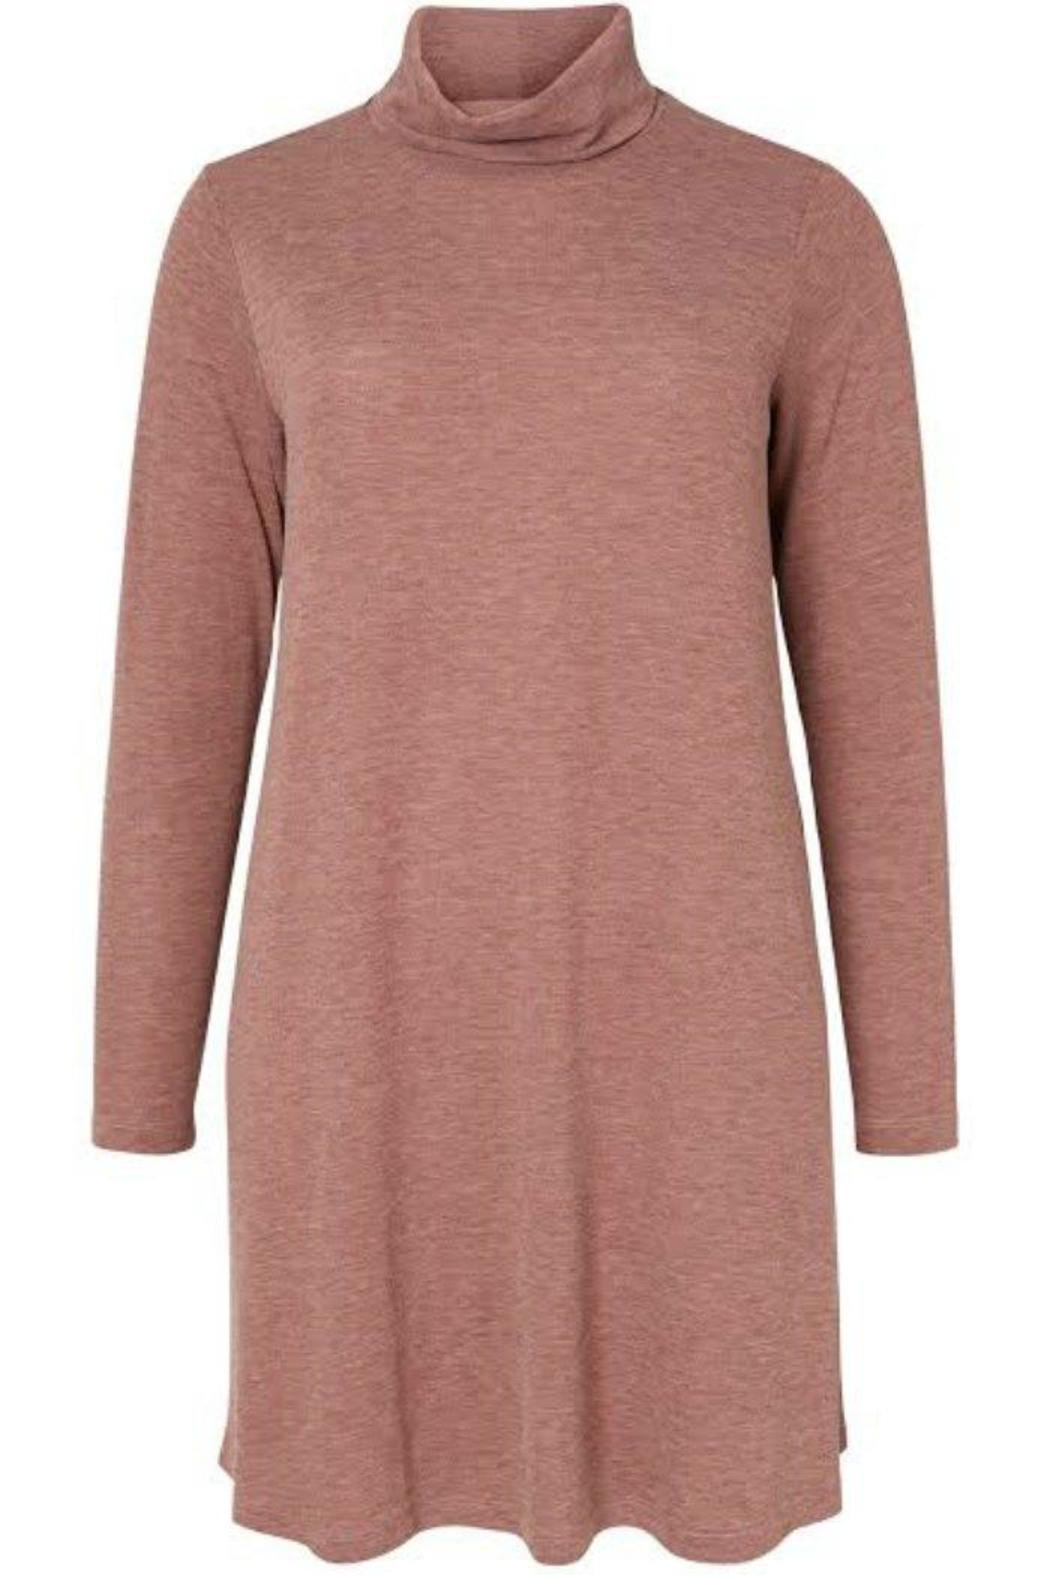 JUNAROSE Rose Sweater Dress - Front Cropped Image